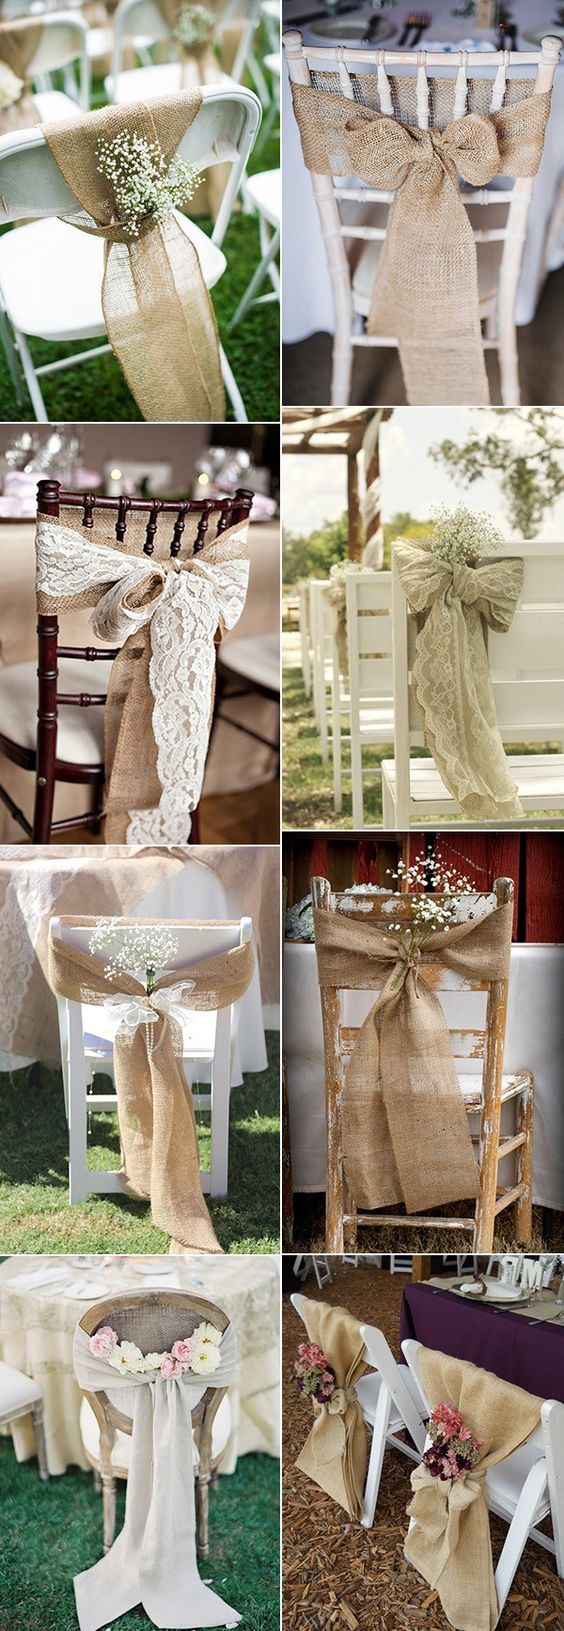 ideas para decorar las sillas de una boda